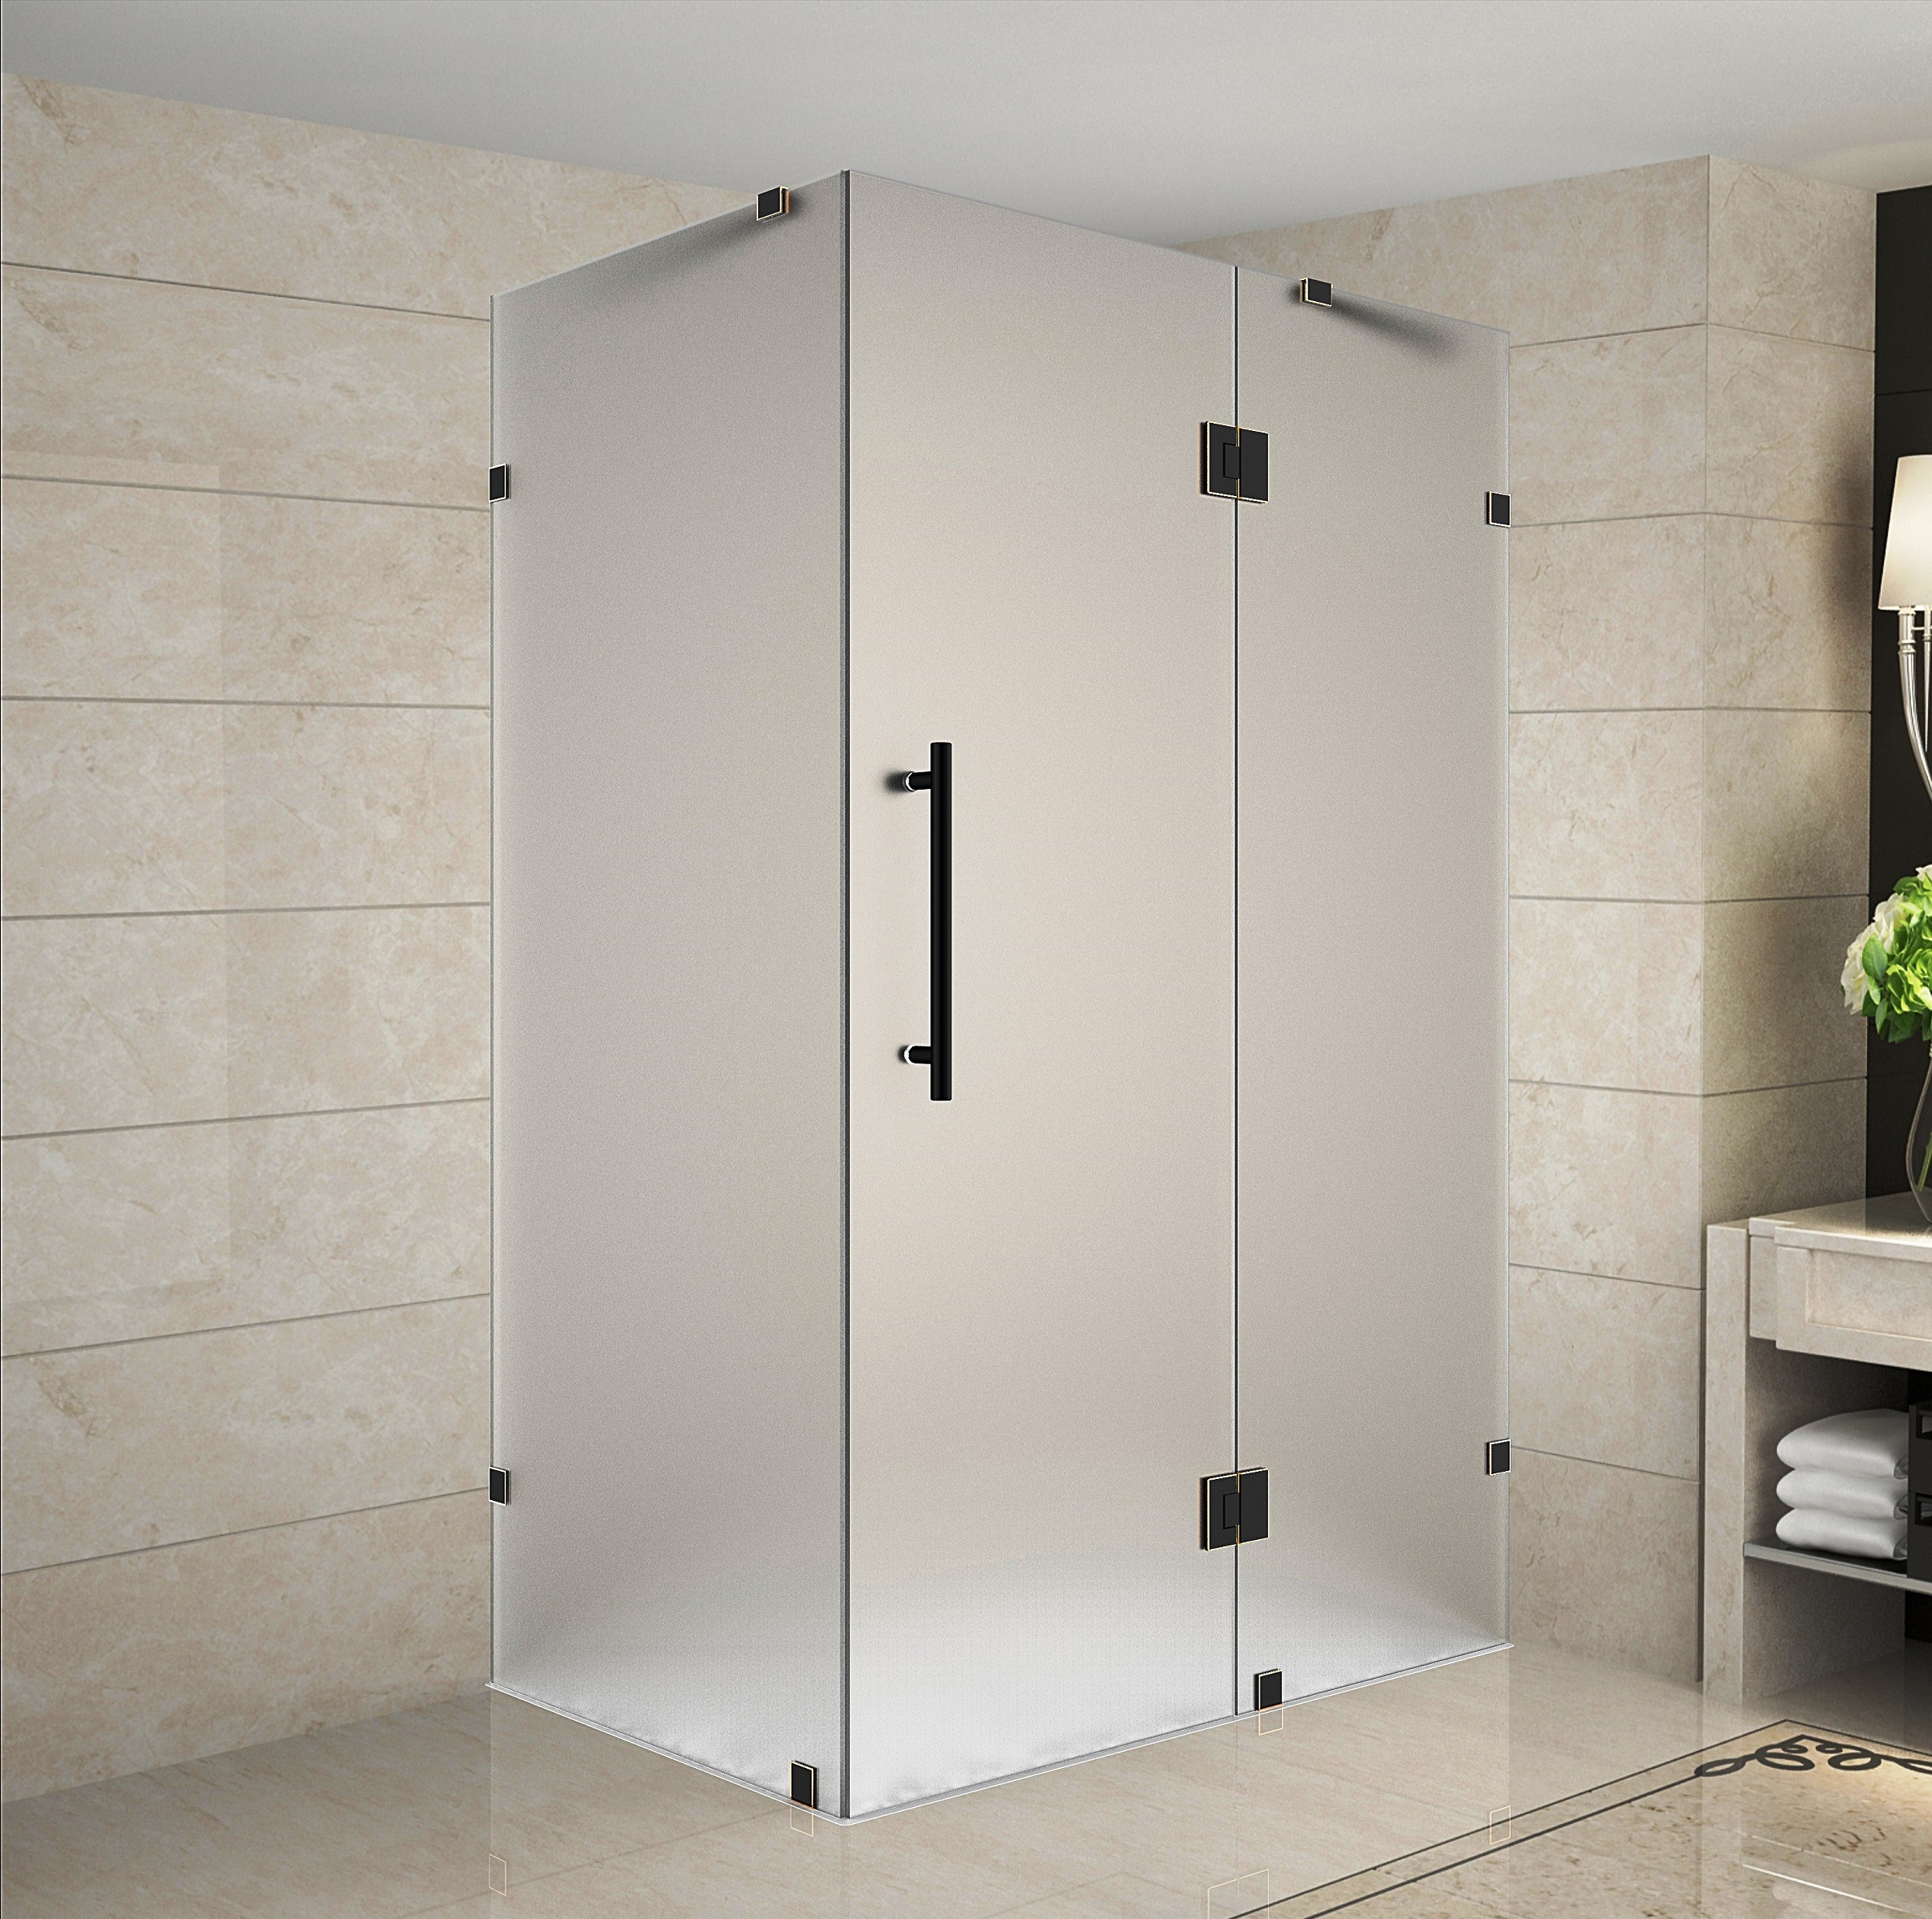 Aston Global SEN987F-CH-3236-10 Avalux Completely Frameless Frosted Glass Shower Enclosure In Chrome